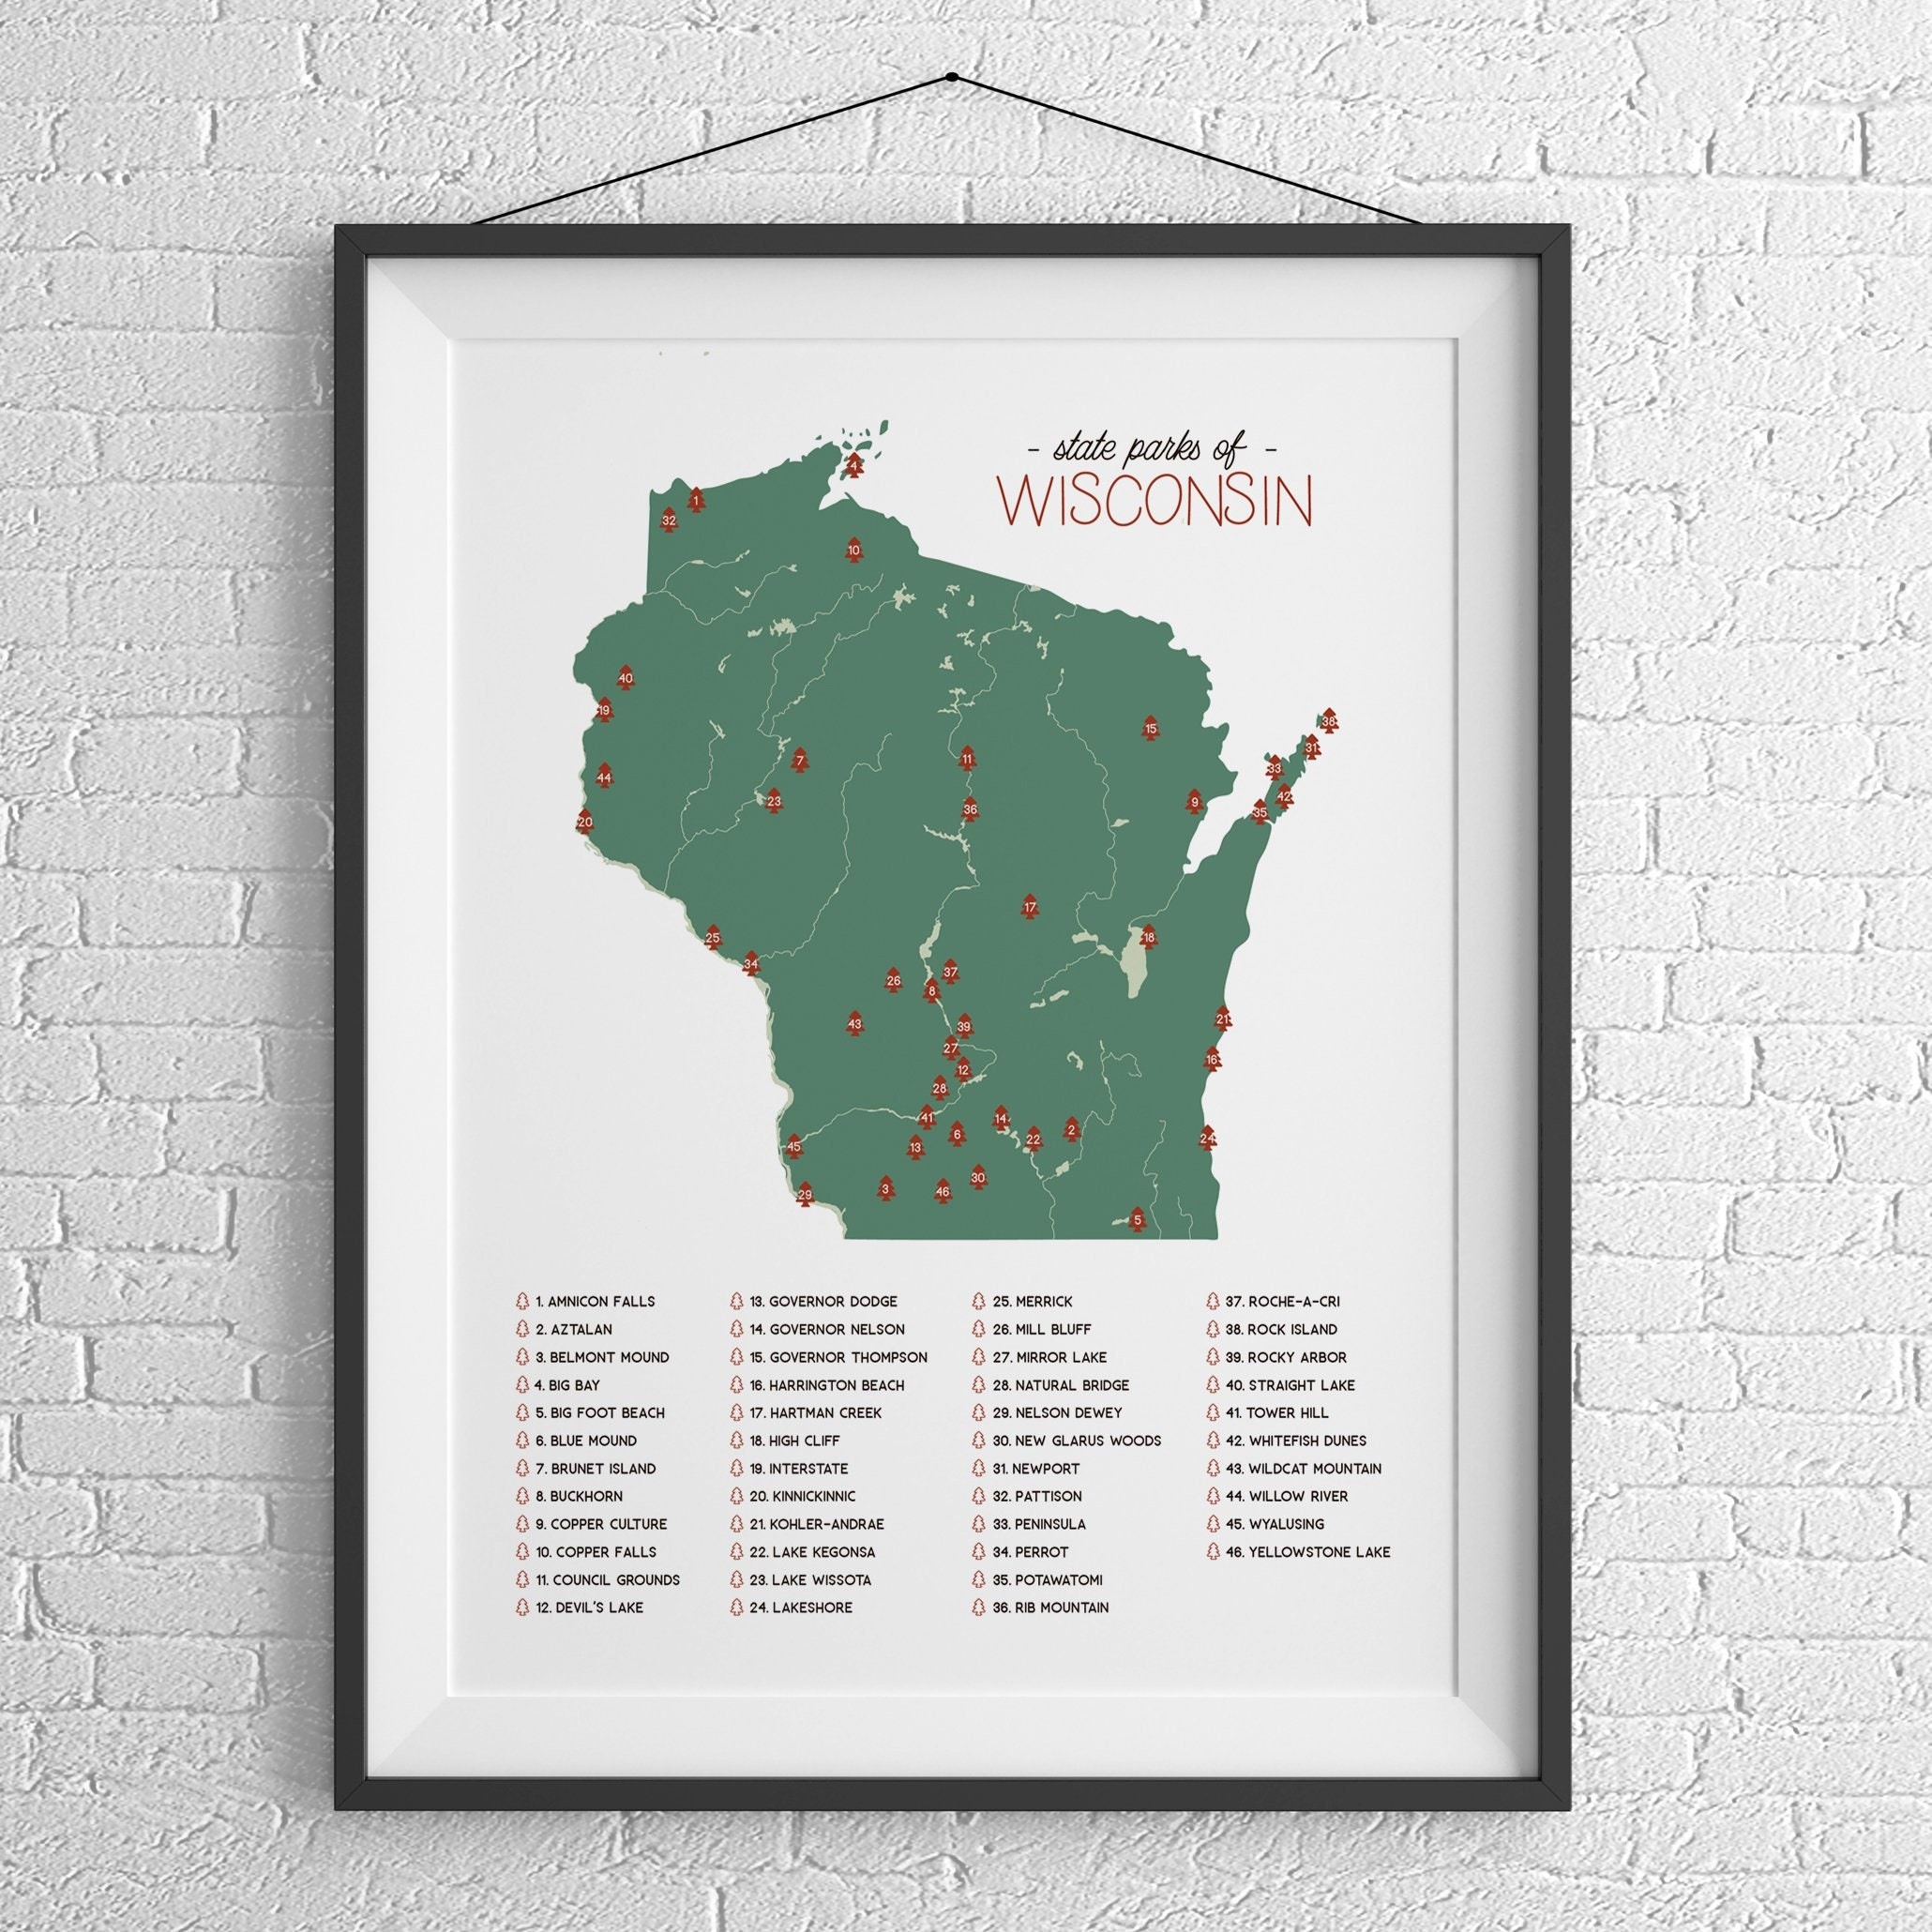 LOCAL PICKUP - Wisconsin State Parks Illustration Map 12x18 Poster Print,  Wisconsin Travel Poster